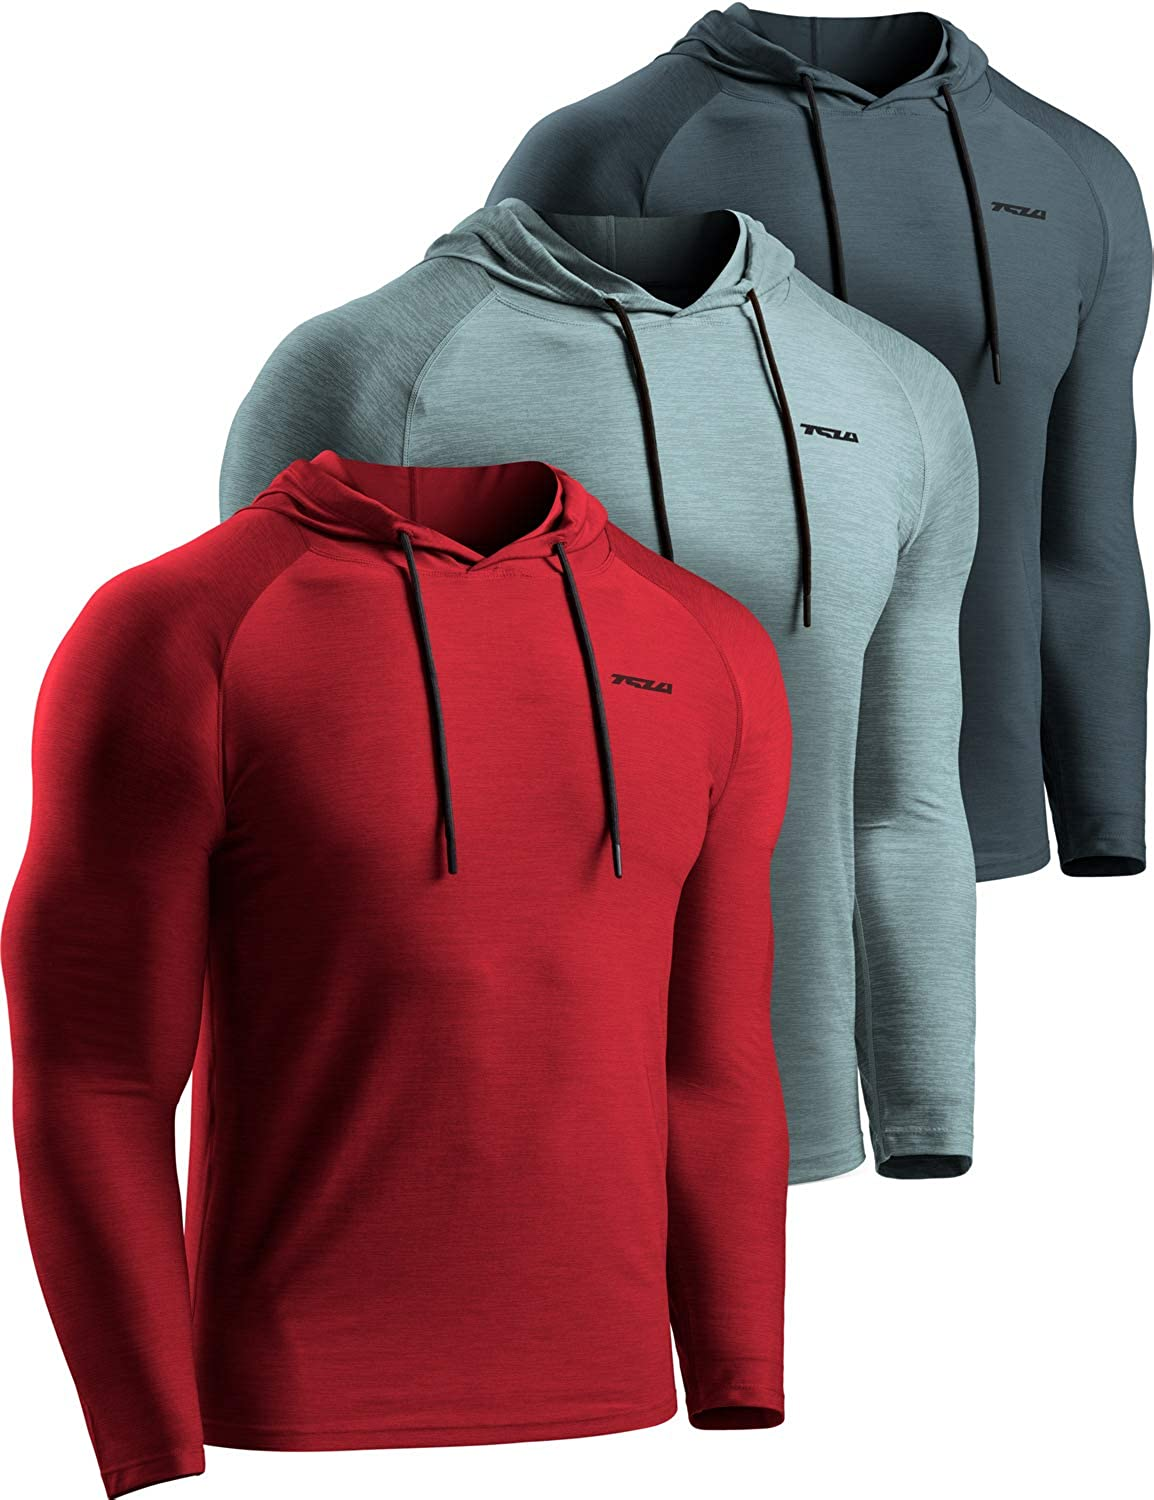 Super sale TSLA 3 Pack Men's Long Sleeve Dry Fit Workout Pullover Running Max 85% OFF